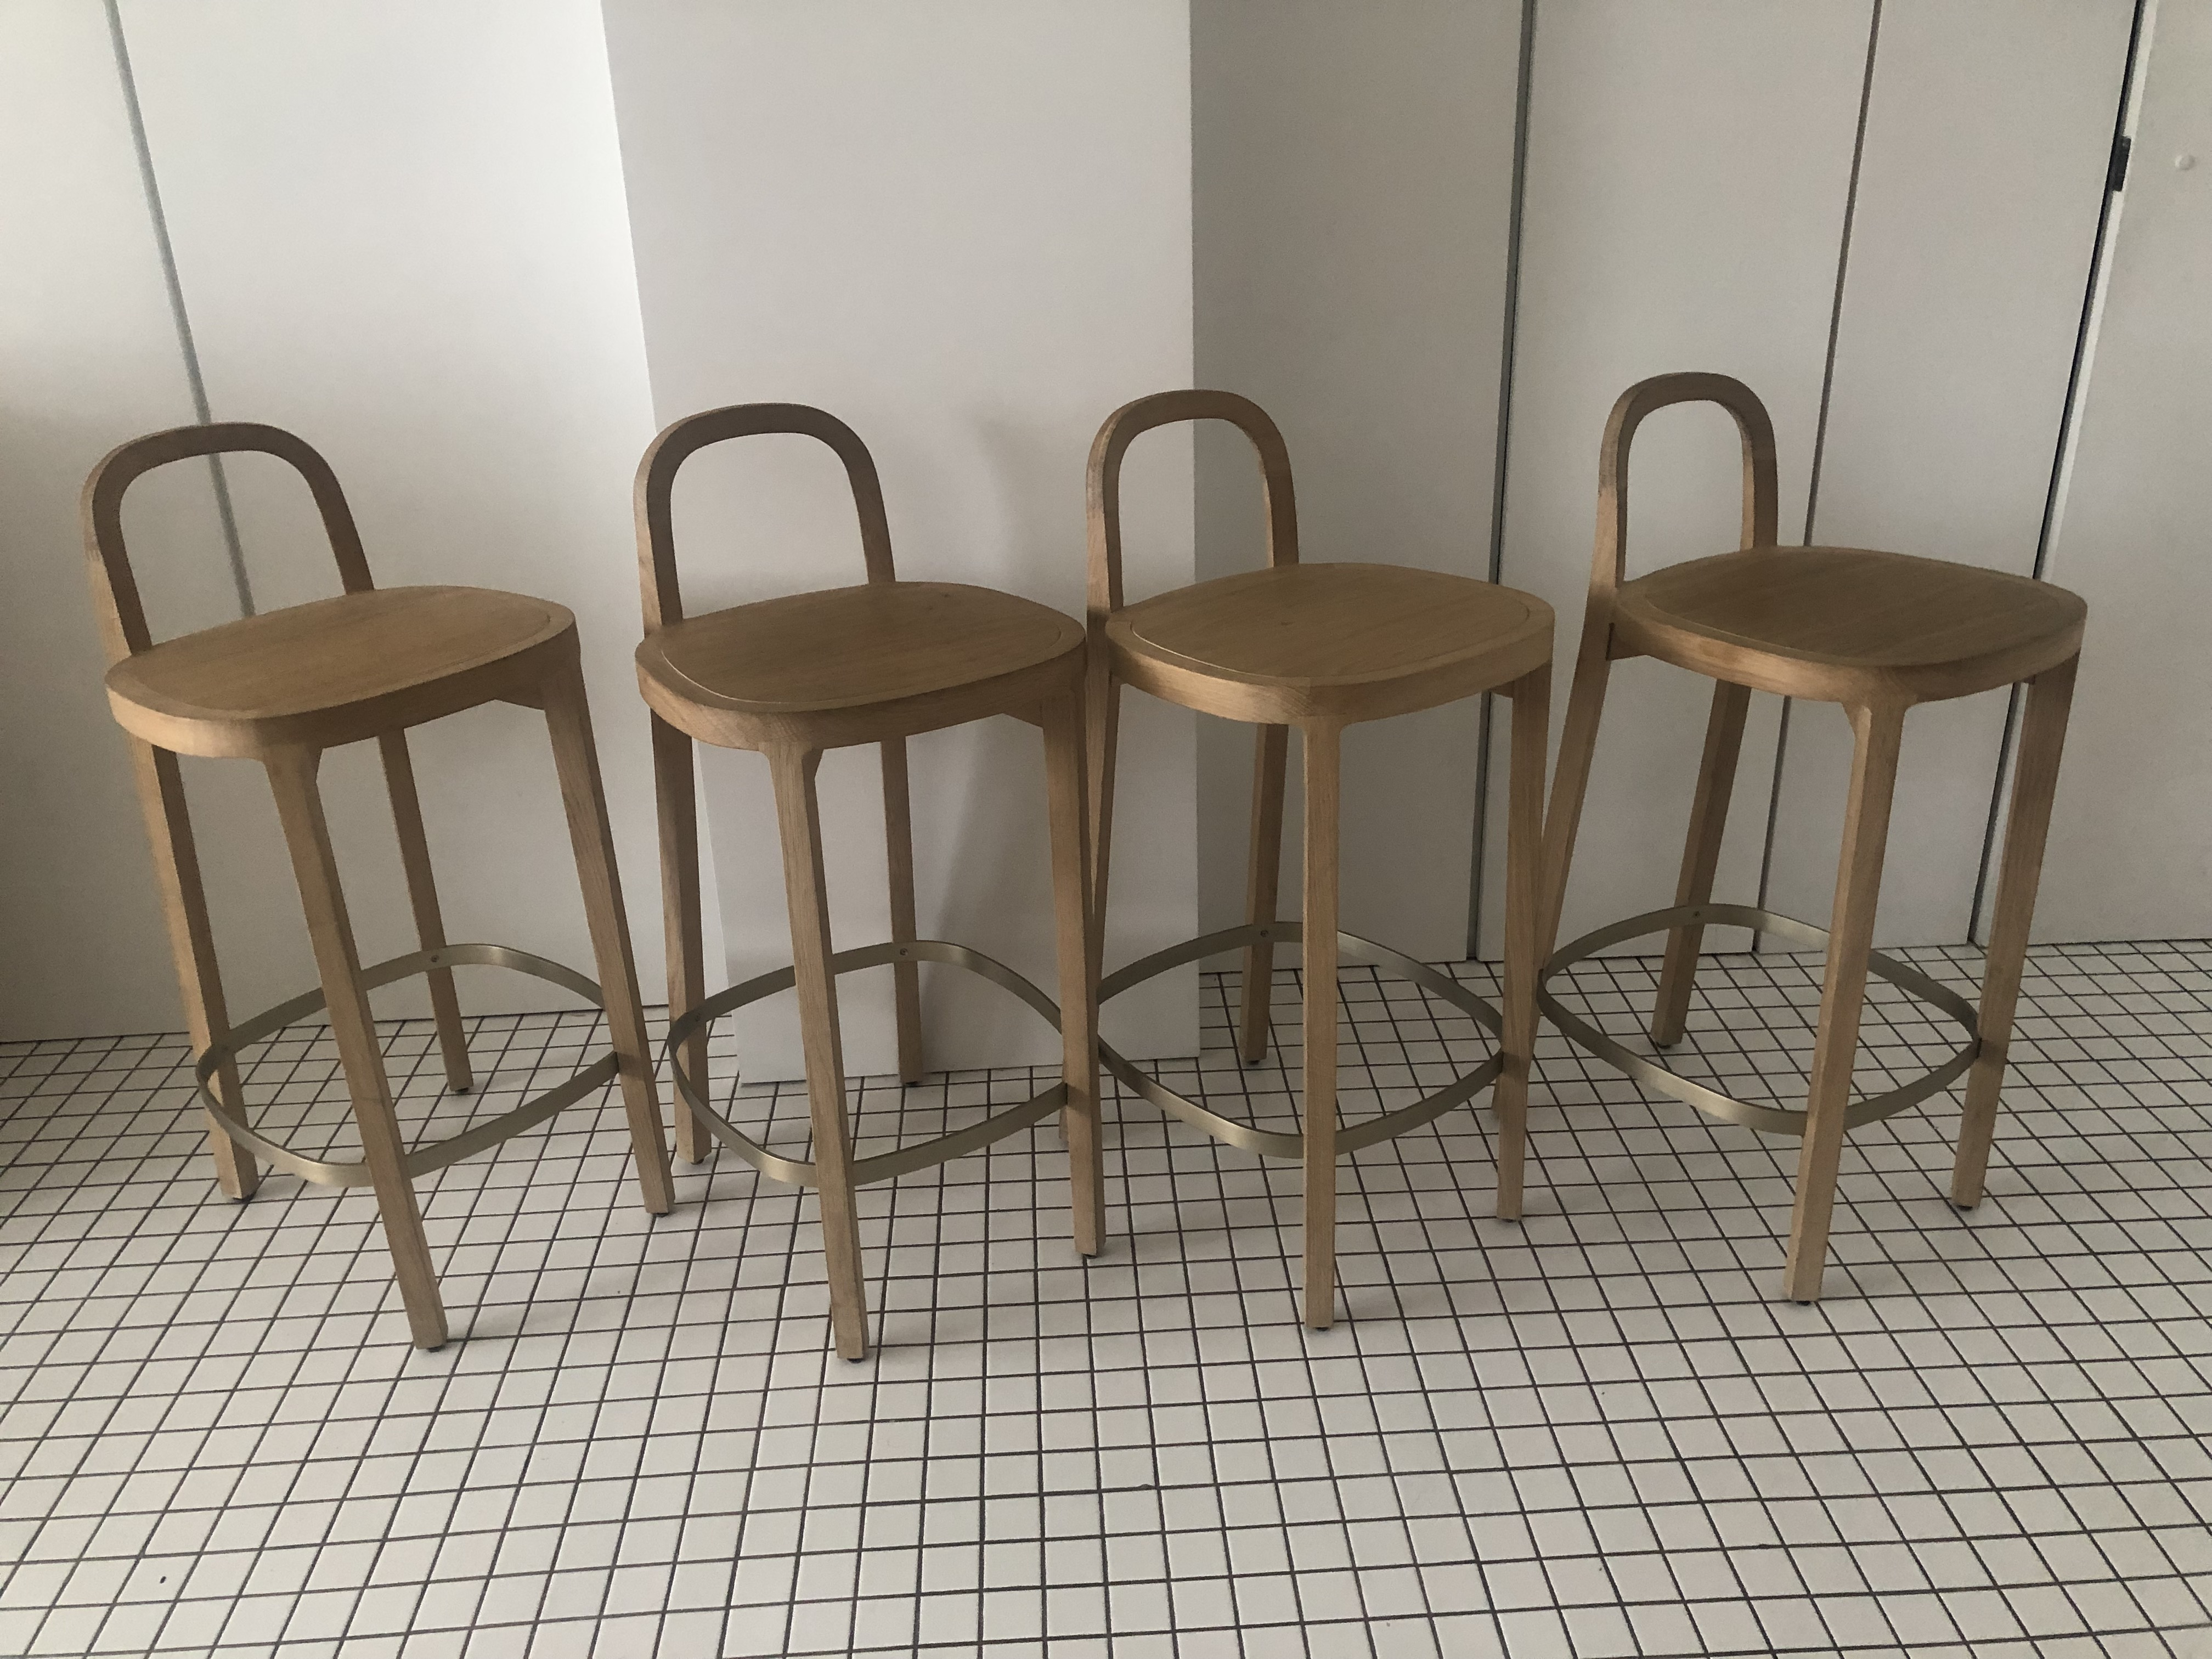 Terrific 7 Stylish Stool Sets Available On Bazaar Apartment Therapy Machost Co Dining Chair Design Ideas Machostcouk